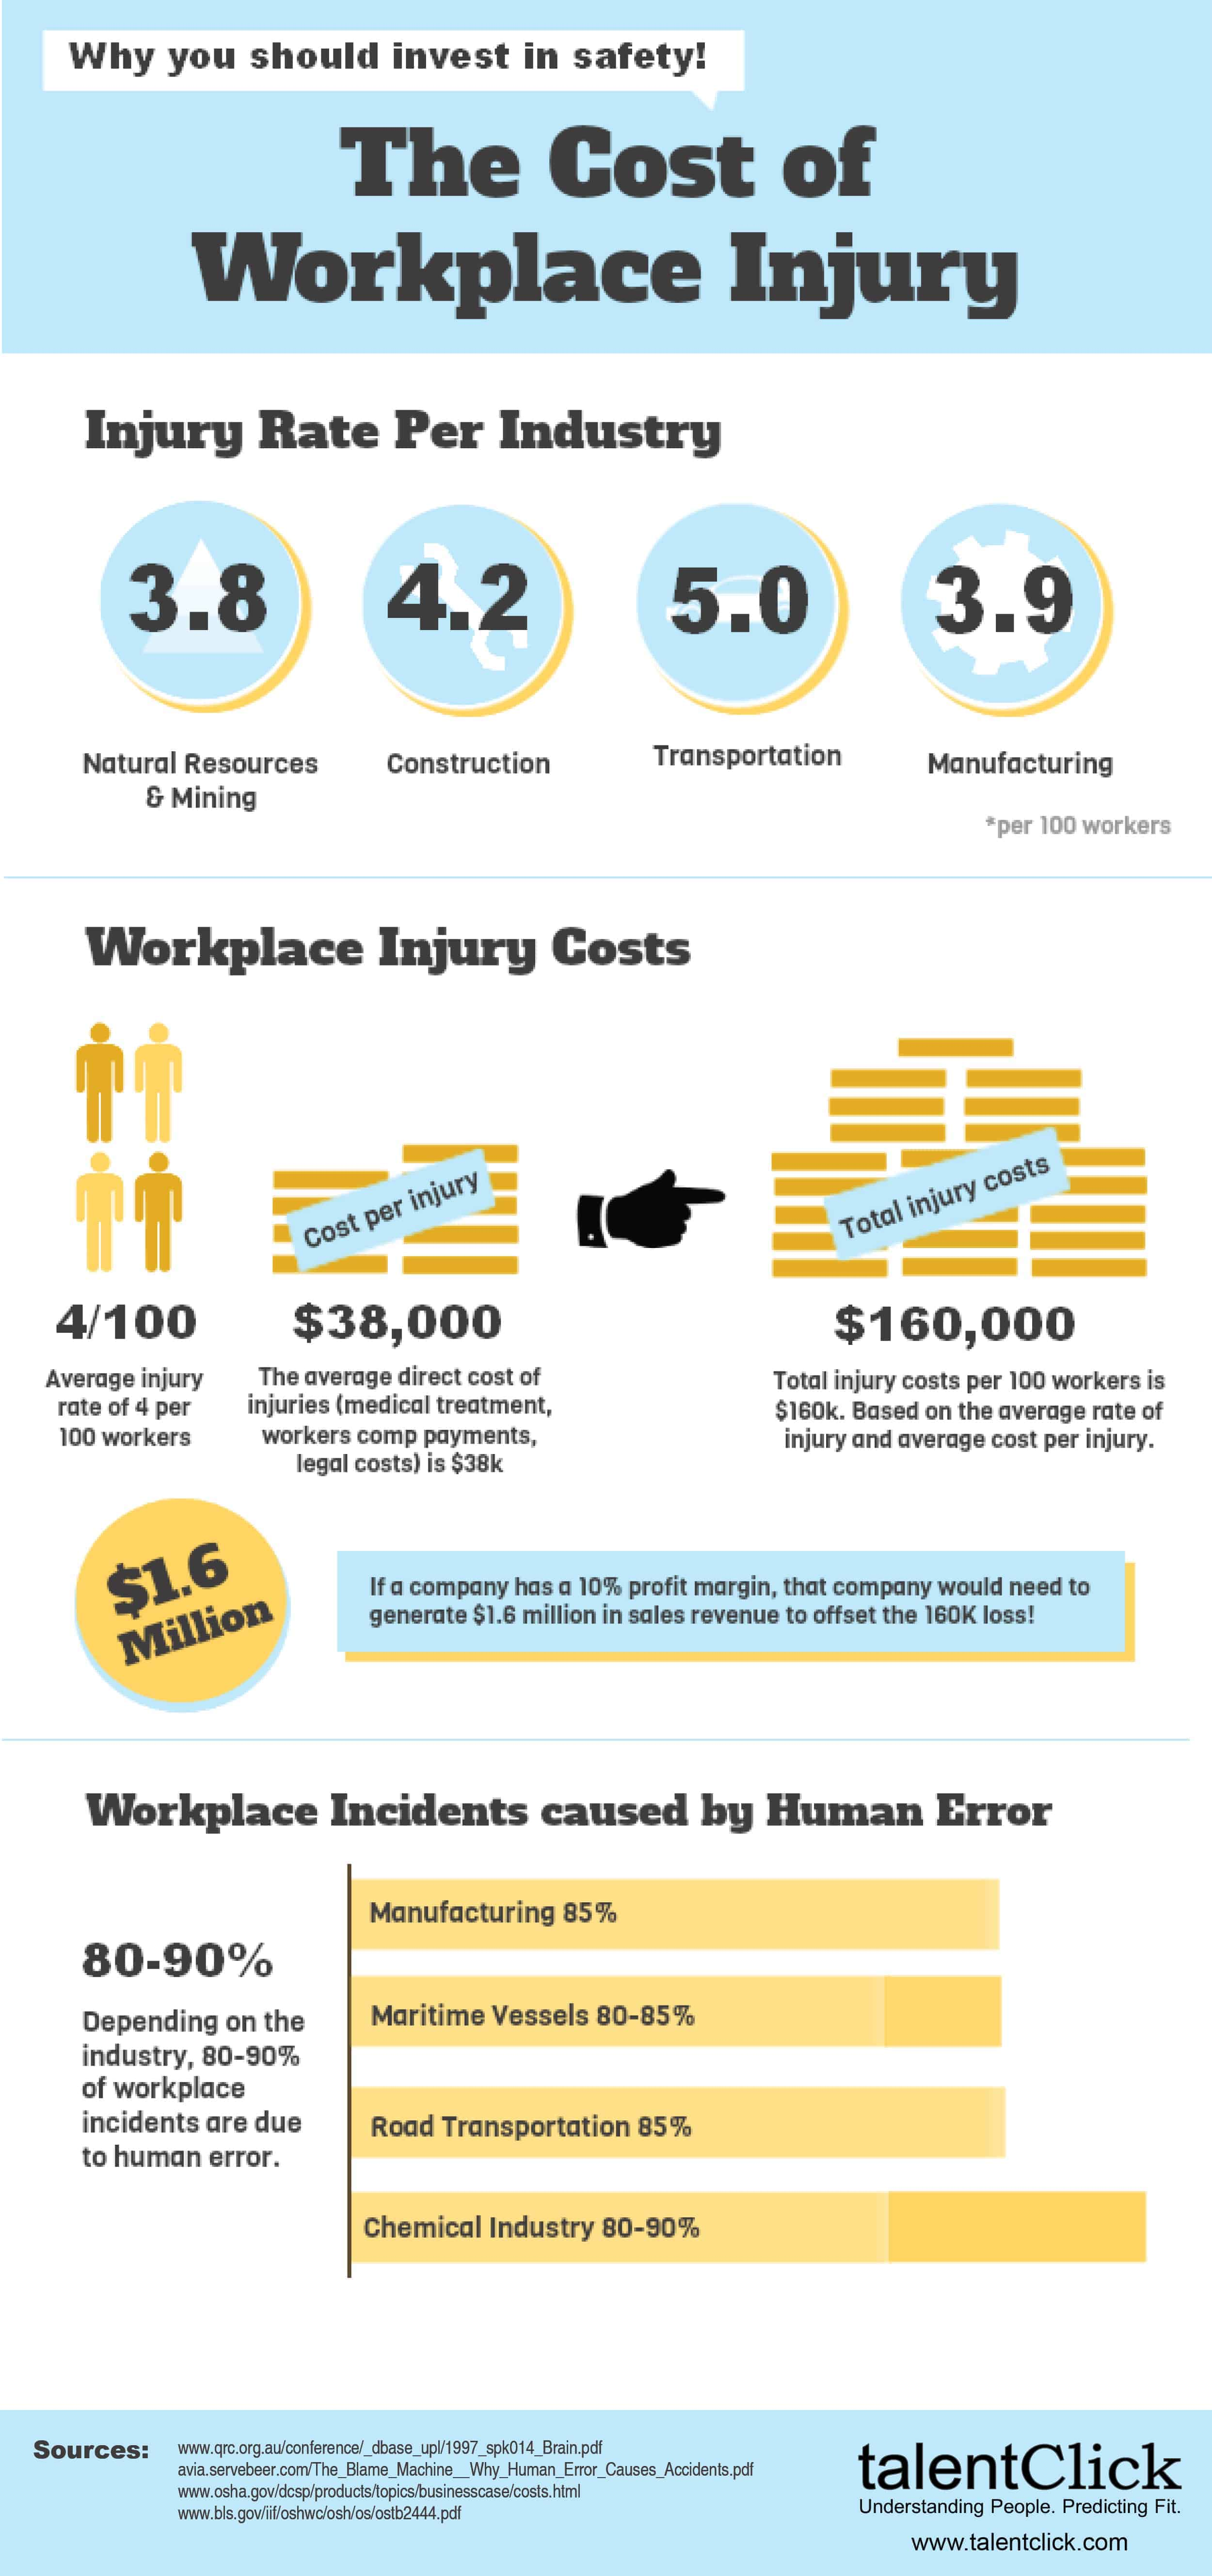 http://www.talentclick.com/wp-content/uploads/2013/03/TC-Infographic-Workplace-Injury-web1.jpg